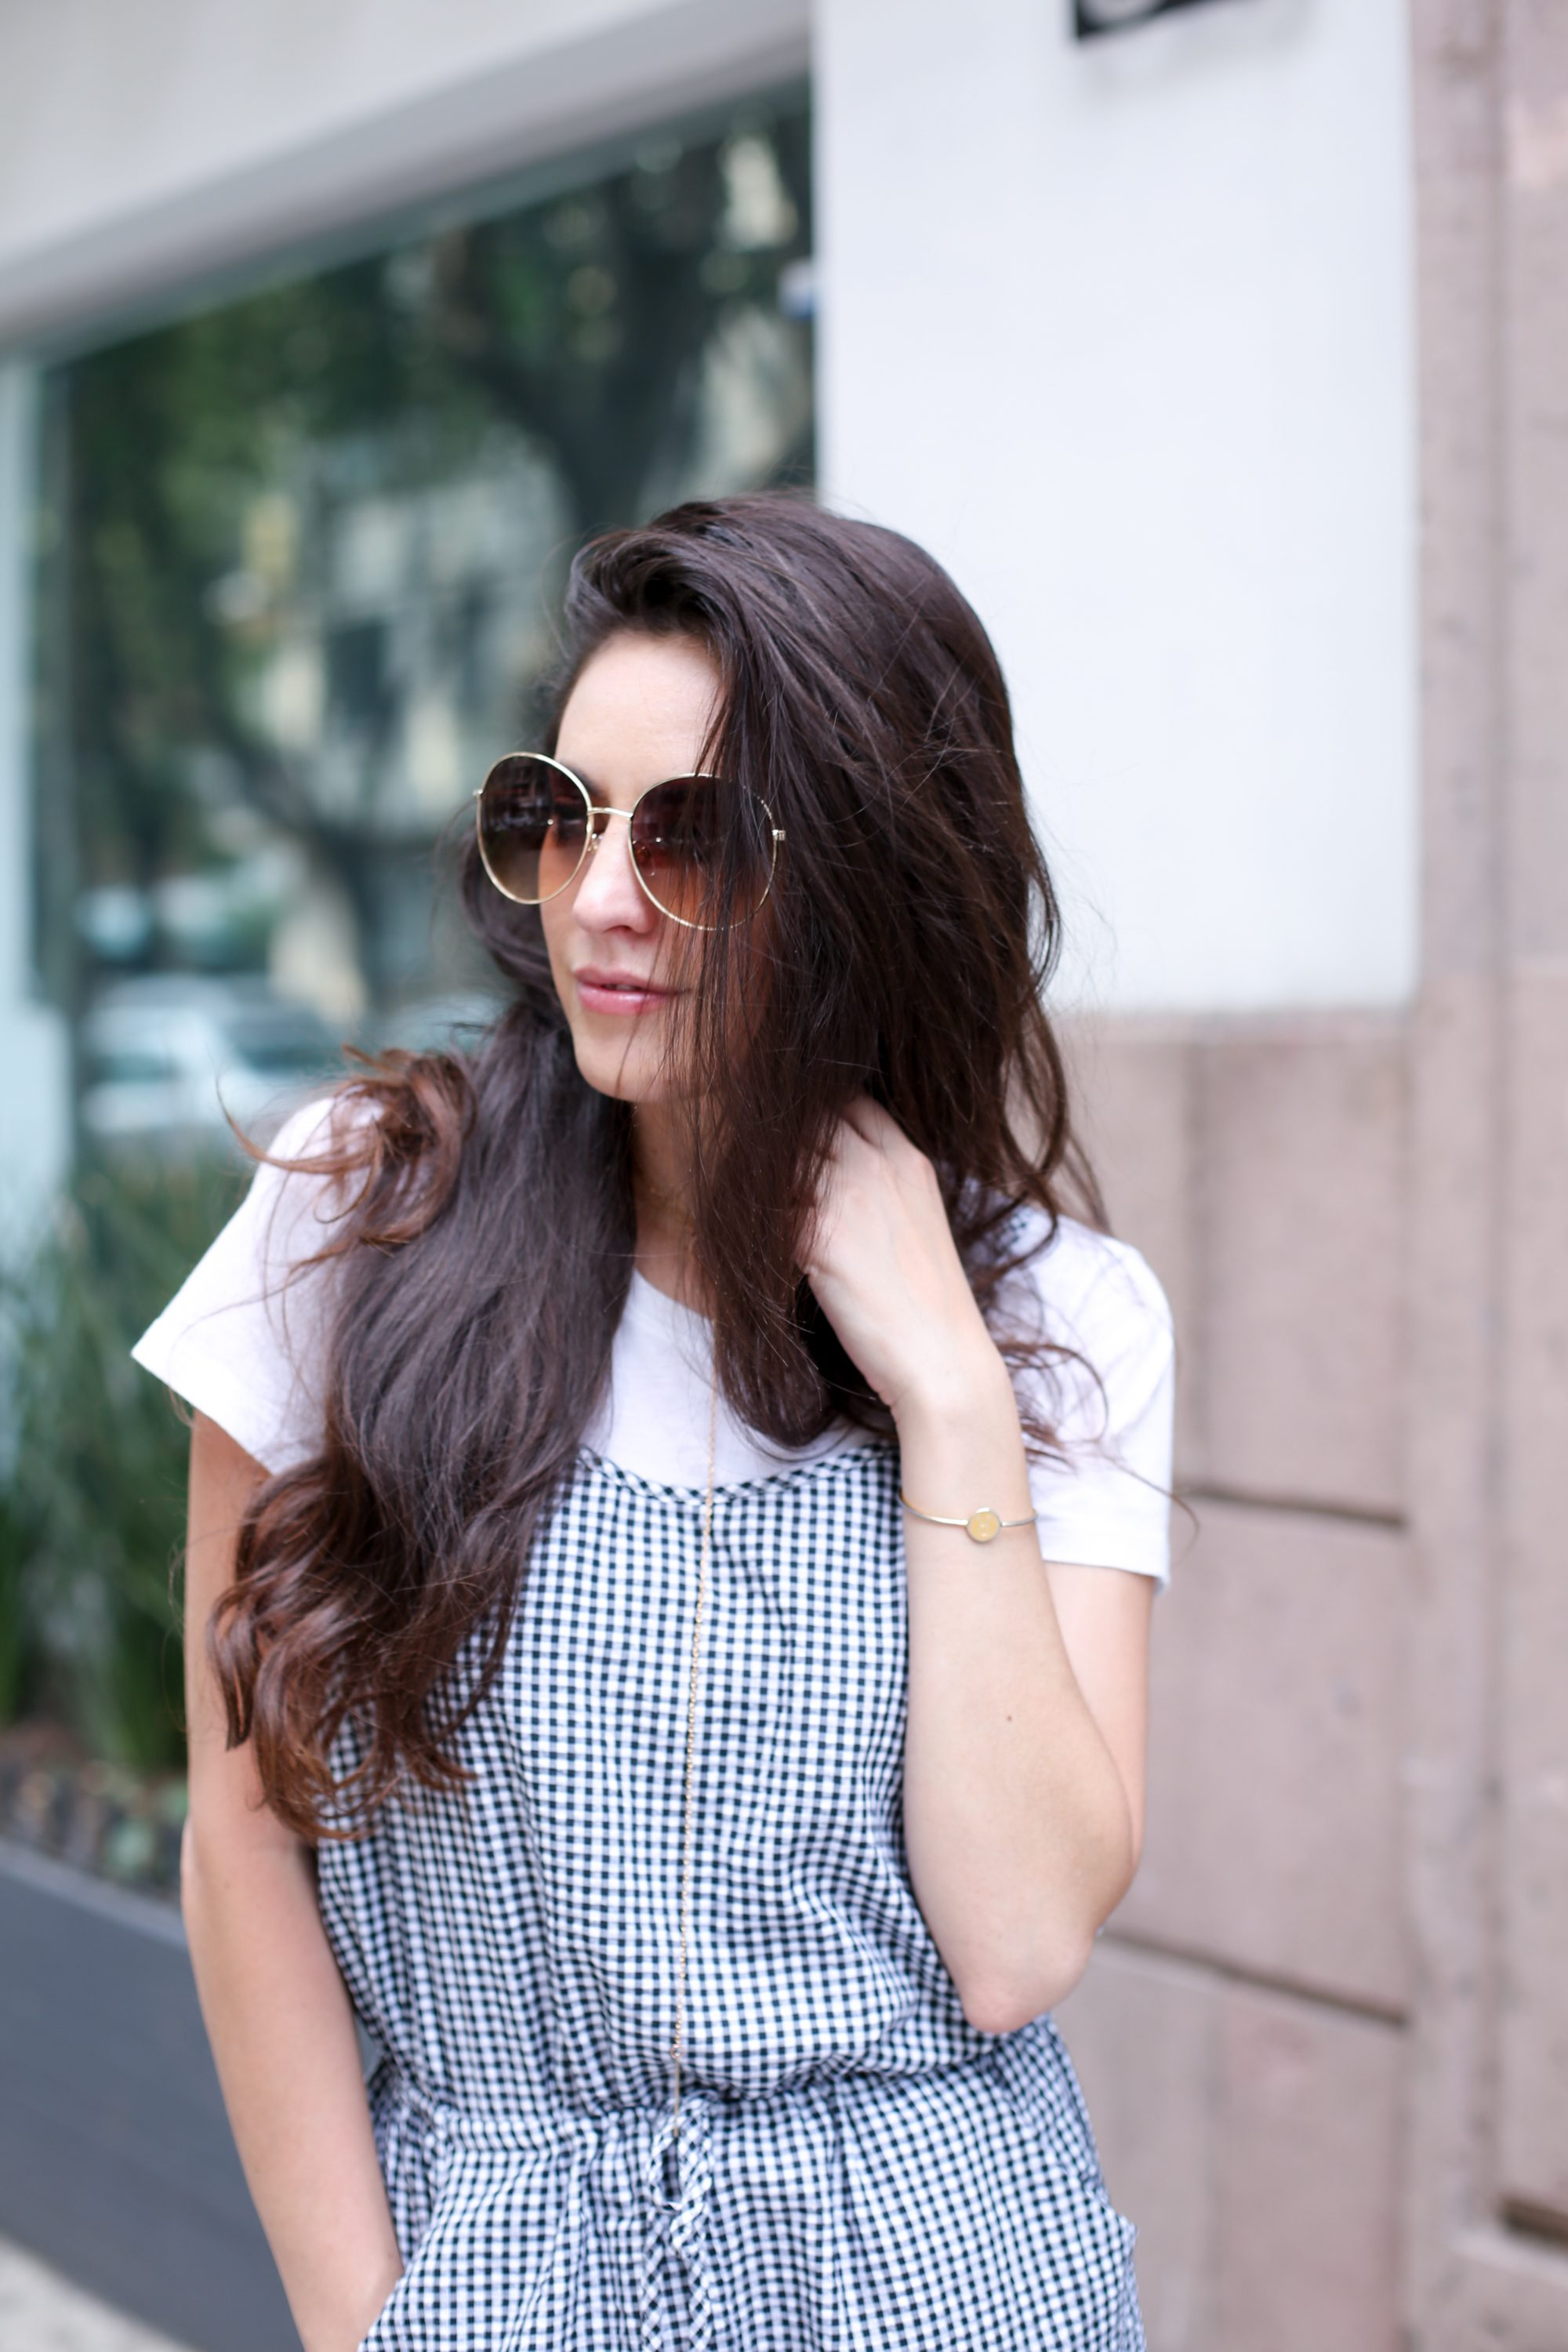 gingham jumpsuit, polanco mexico city, where to shop in mexico city, best neighborhoods in mexico city, round gold rimmed sunglasses, summer style, spring style, summer outfit ideas, spring outfit ideas, style and travel blogger